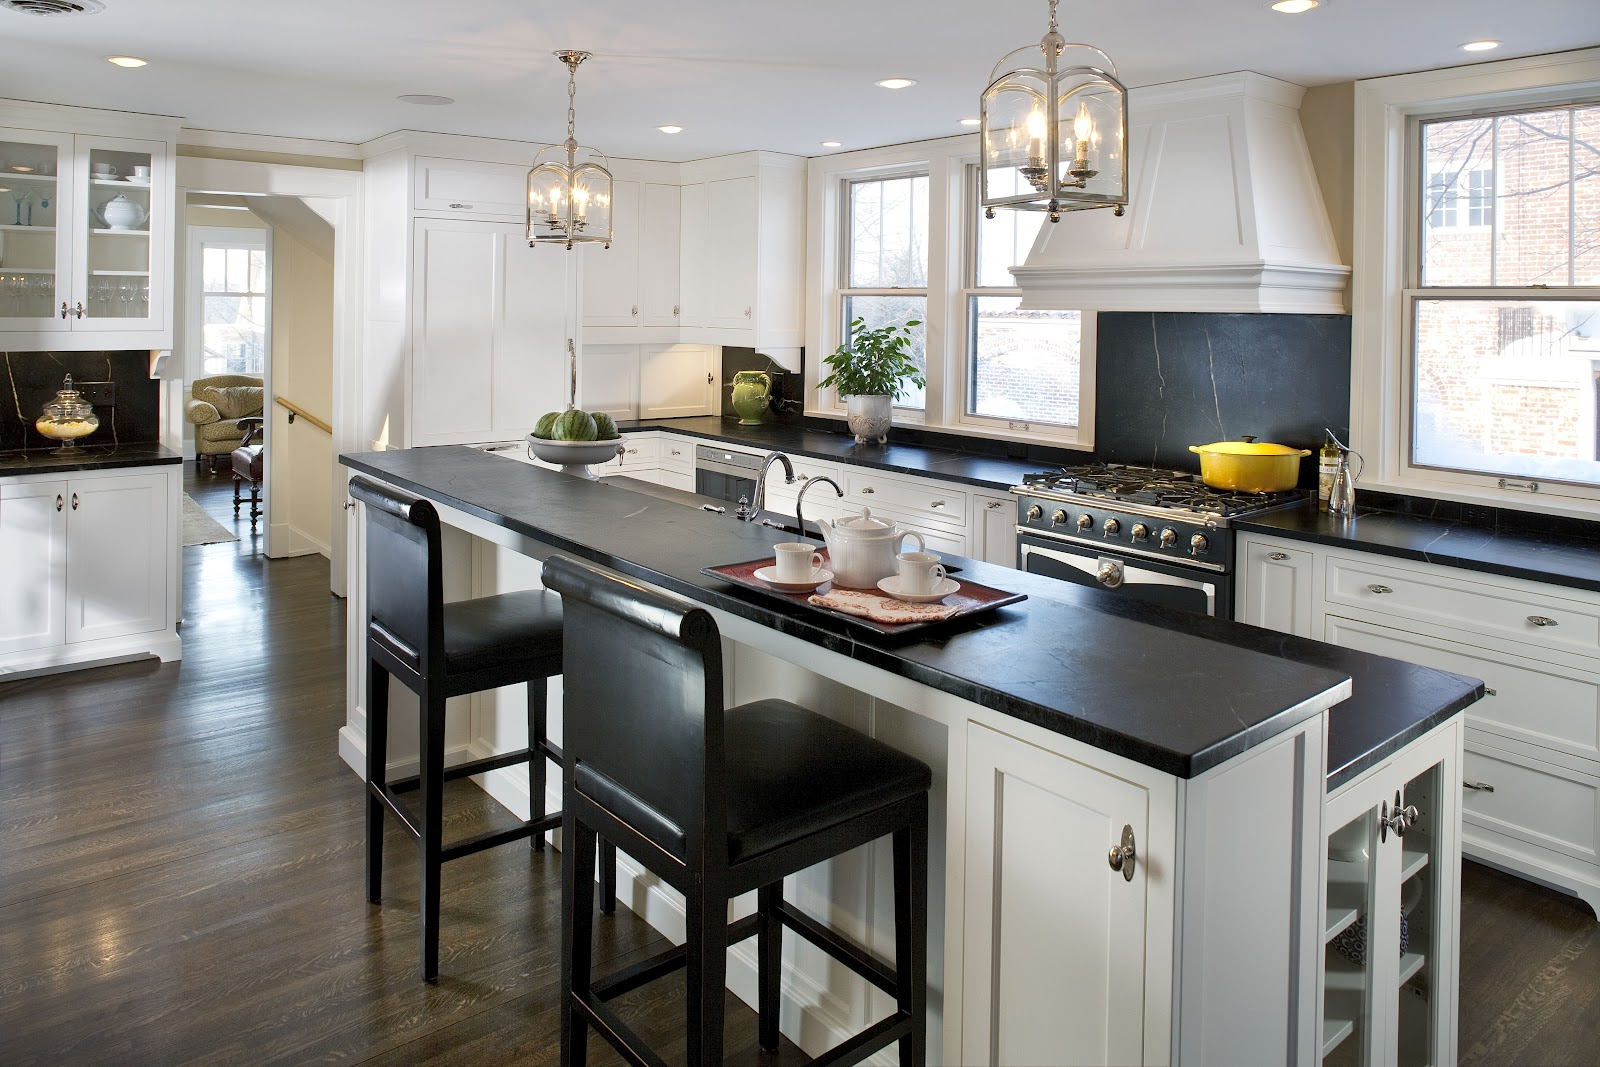 soapstone countertops kitchen countertop prices Costs